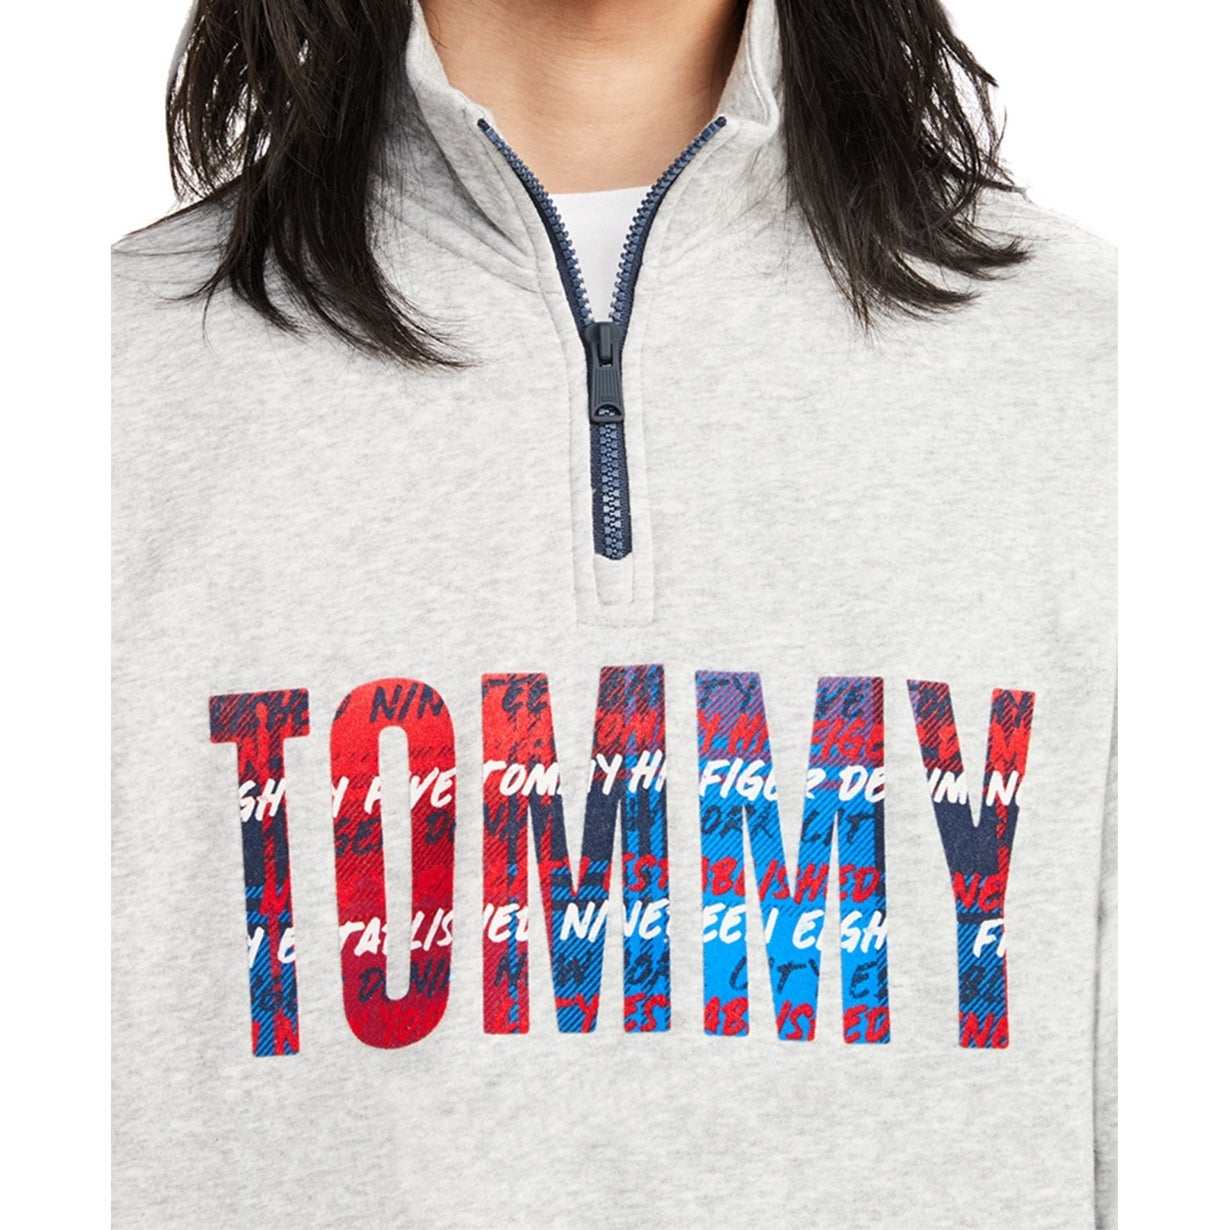 Details about  /Tommy Hilfiger Men/'s Full Zip Logo Indoor Outdoor Casual Jacket $0 Free Ship